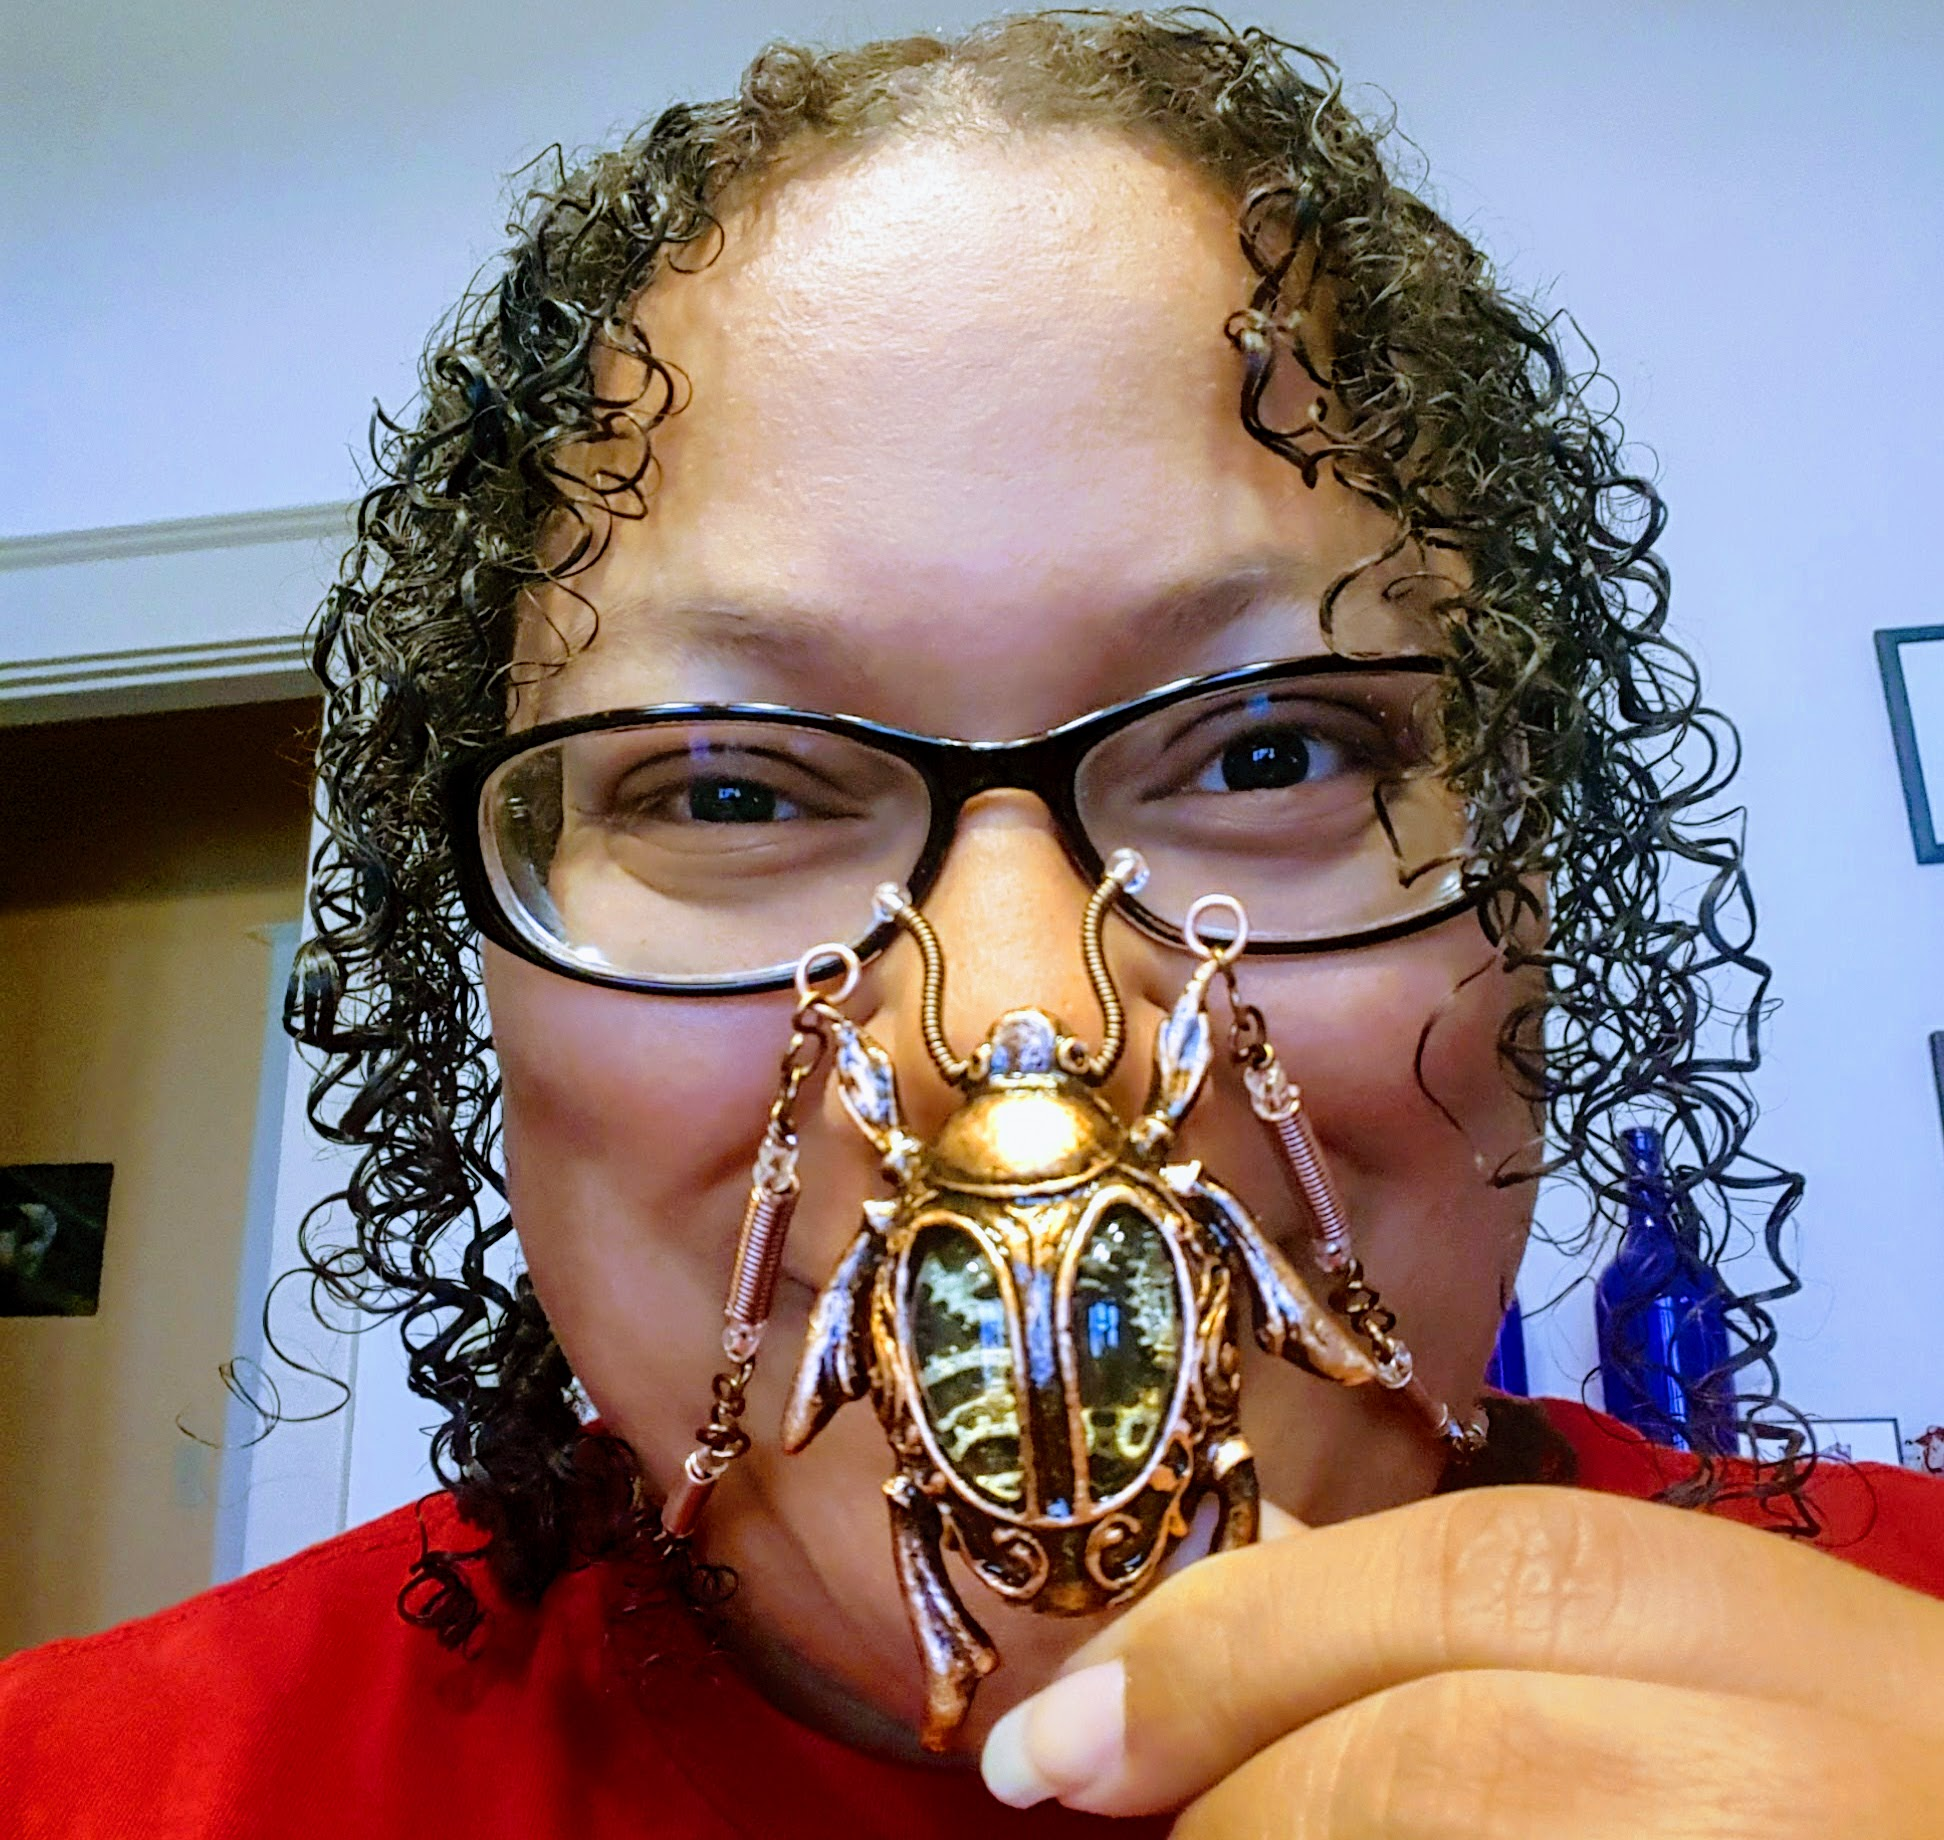 Me with the steampunk scarab necklace I got for the con